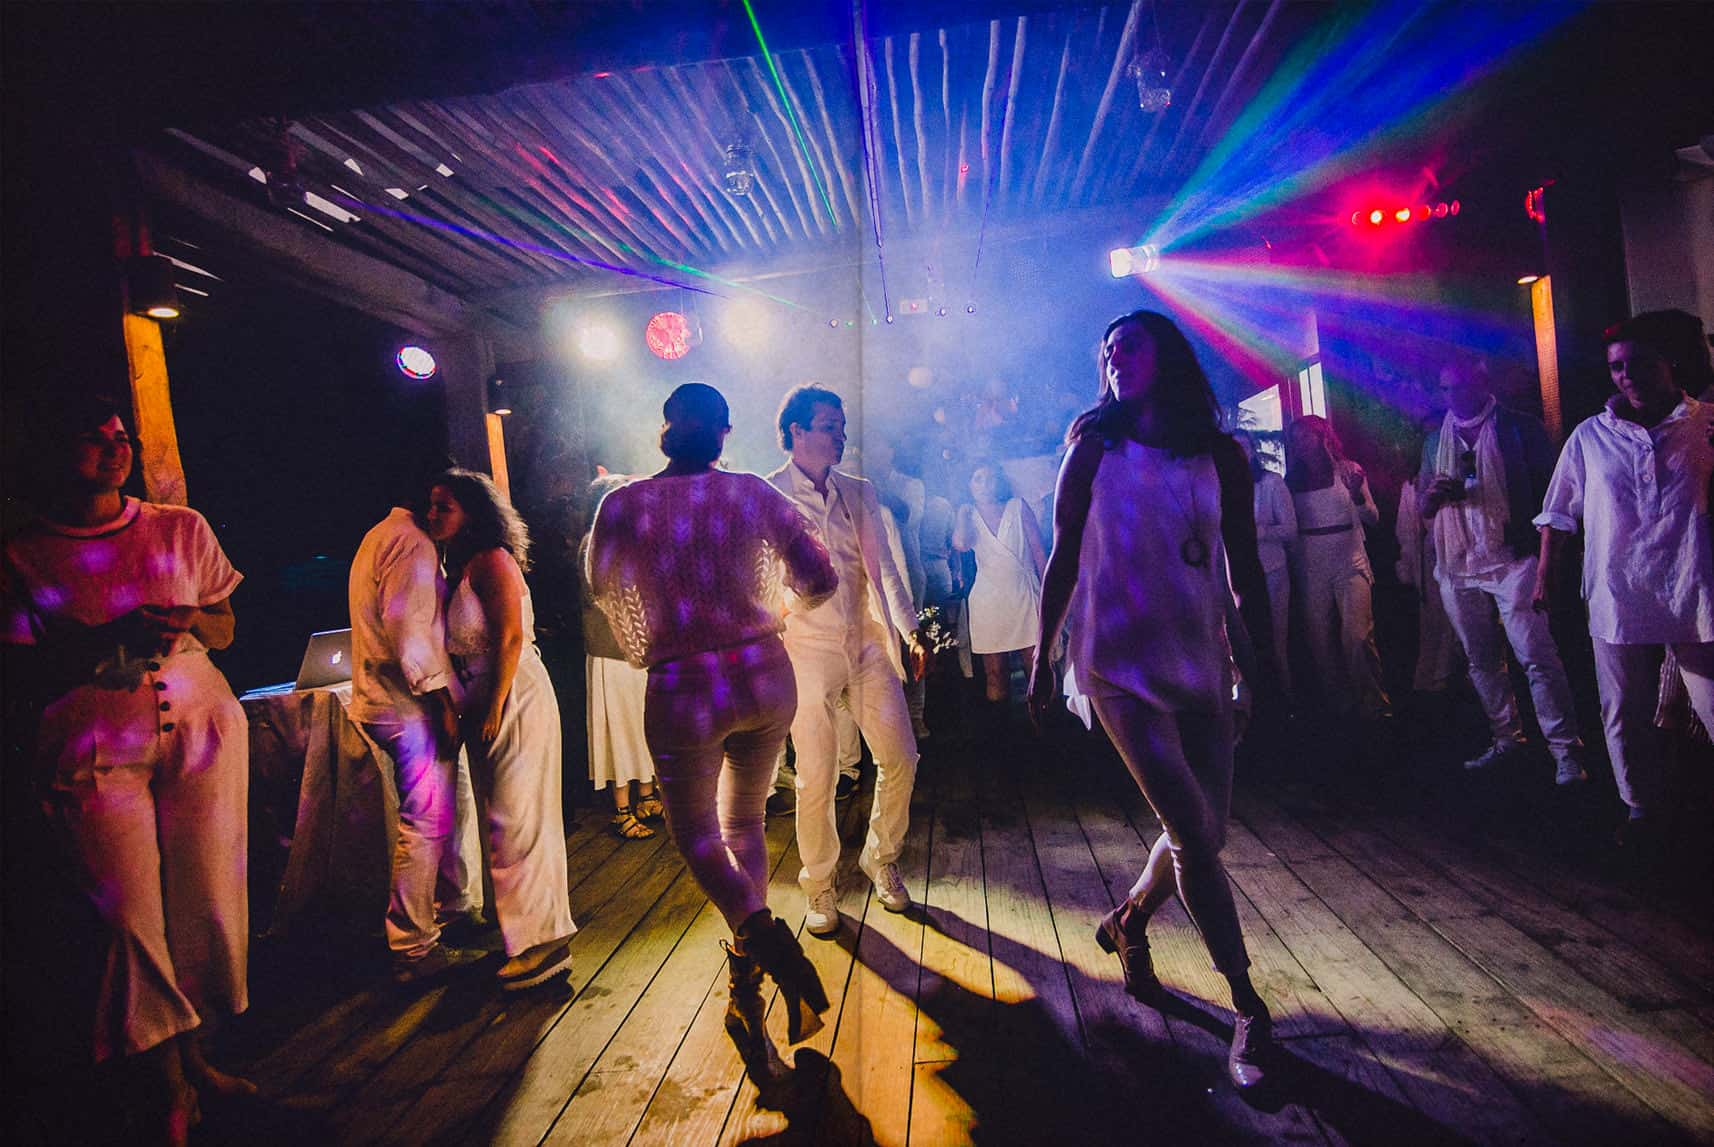 people dancing against the light in the dance floor